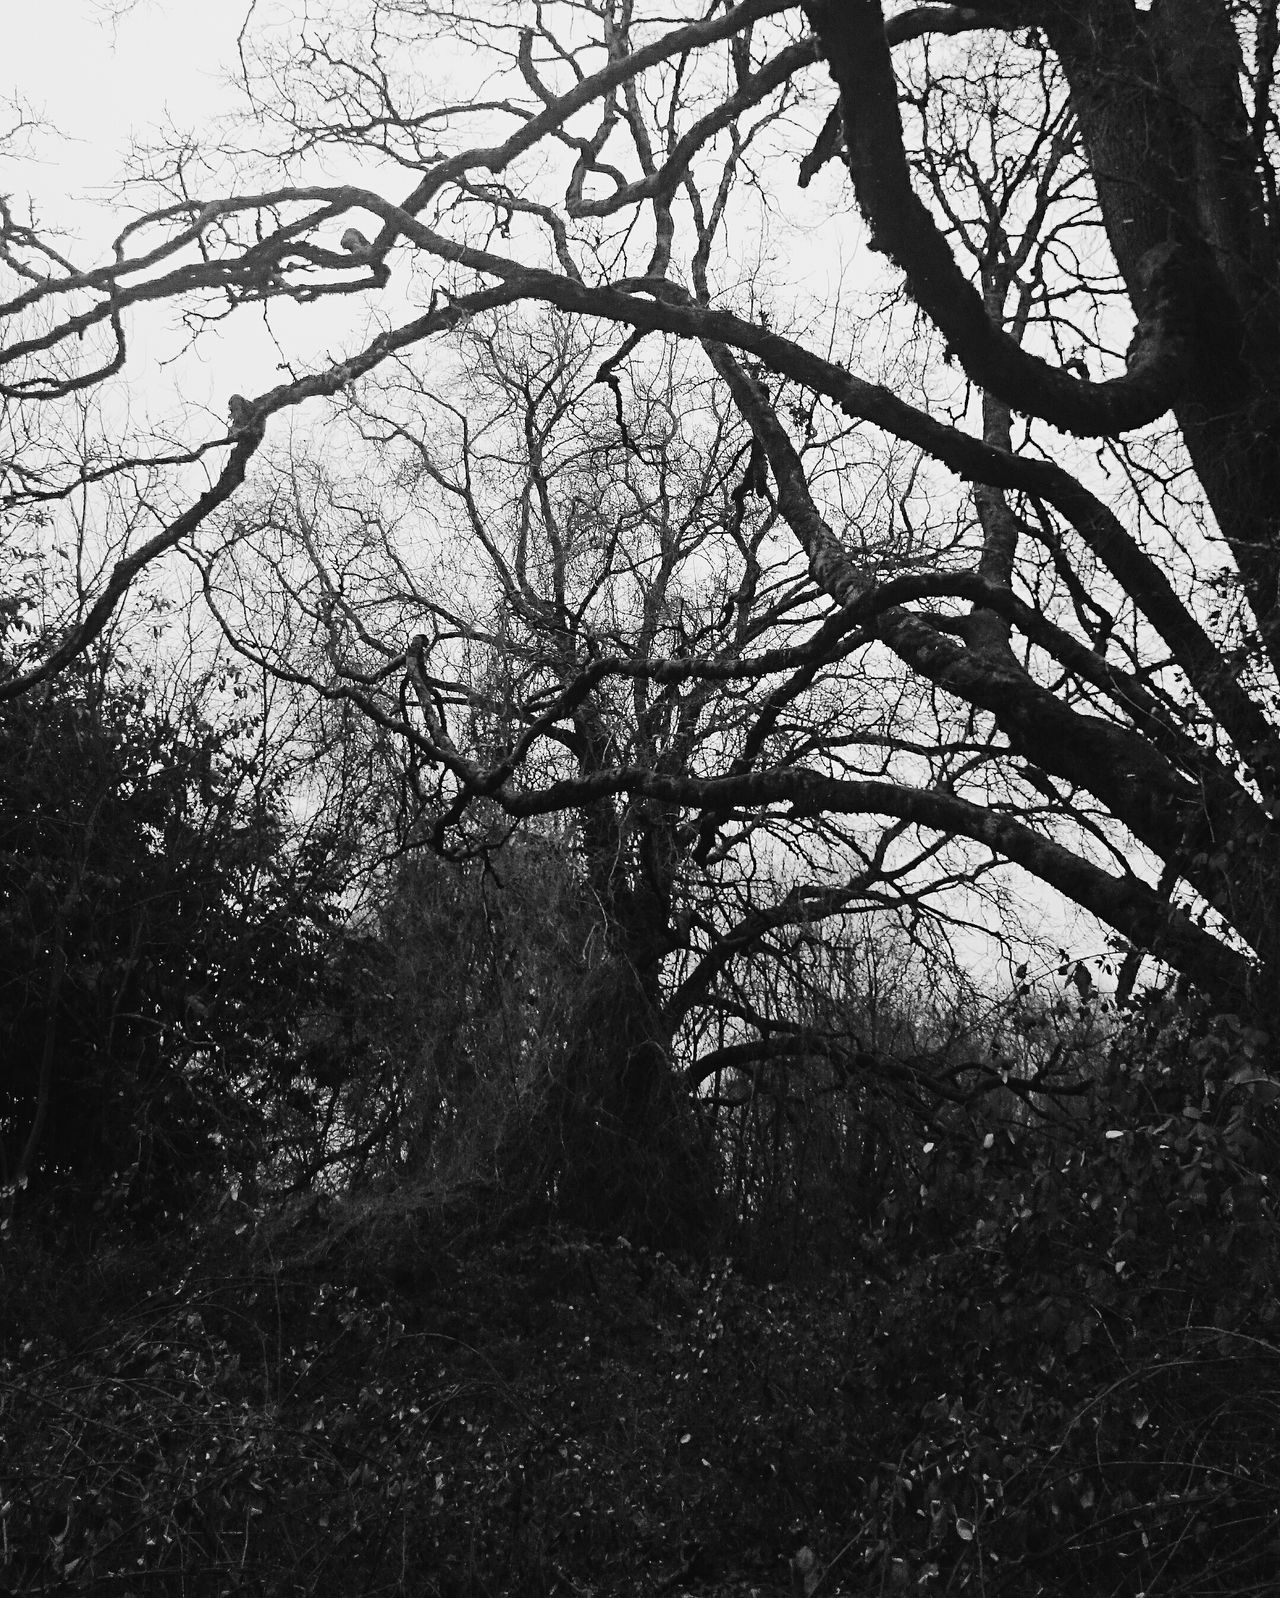 Tree Nature Branch Beauty In Nature No People Bnw Blackandwhite Monochrome Dark Horror Horror Photography High Contrast